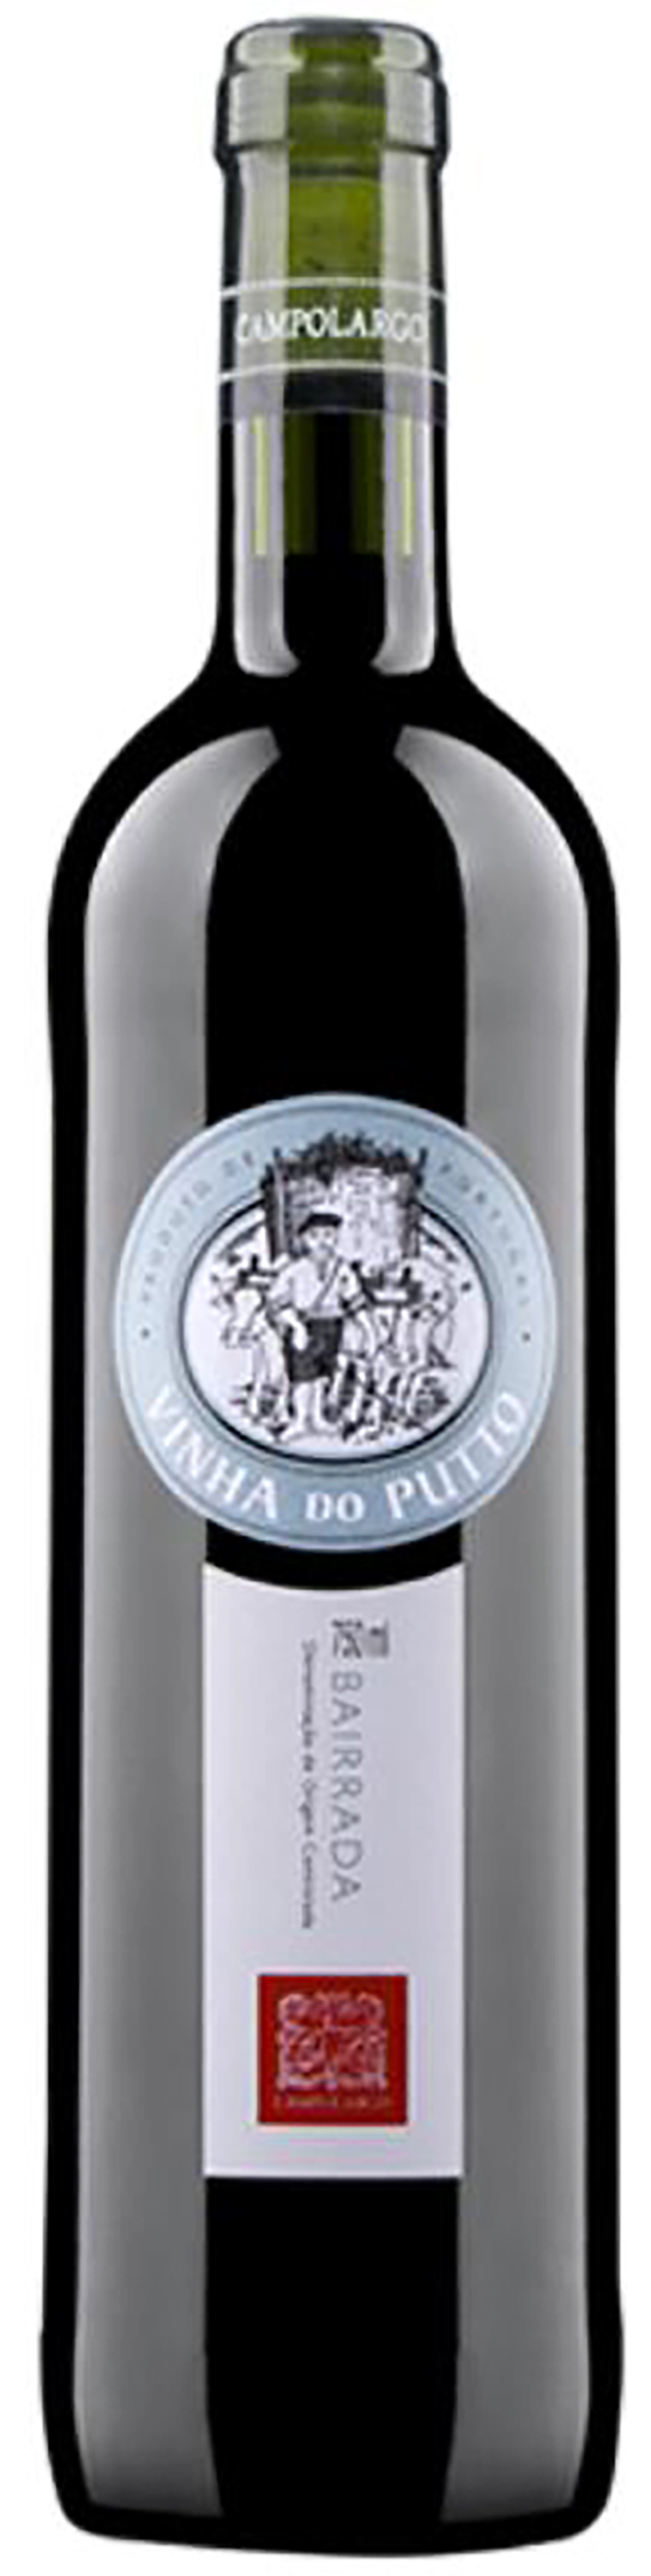 Vinha do Putto Tinto